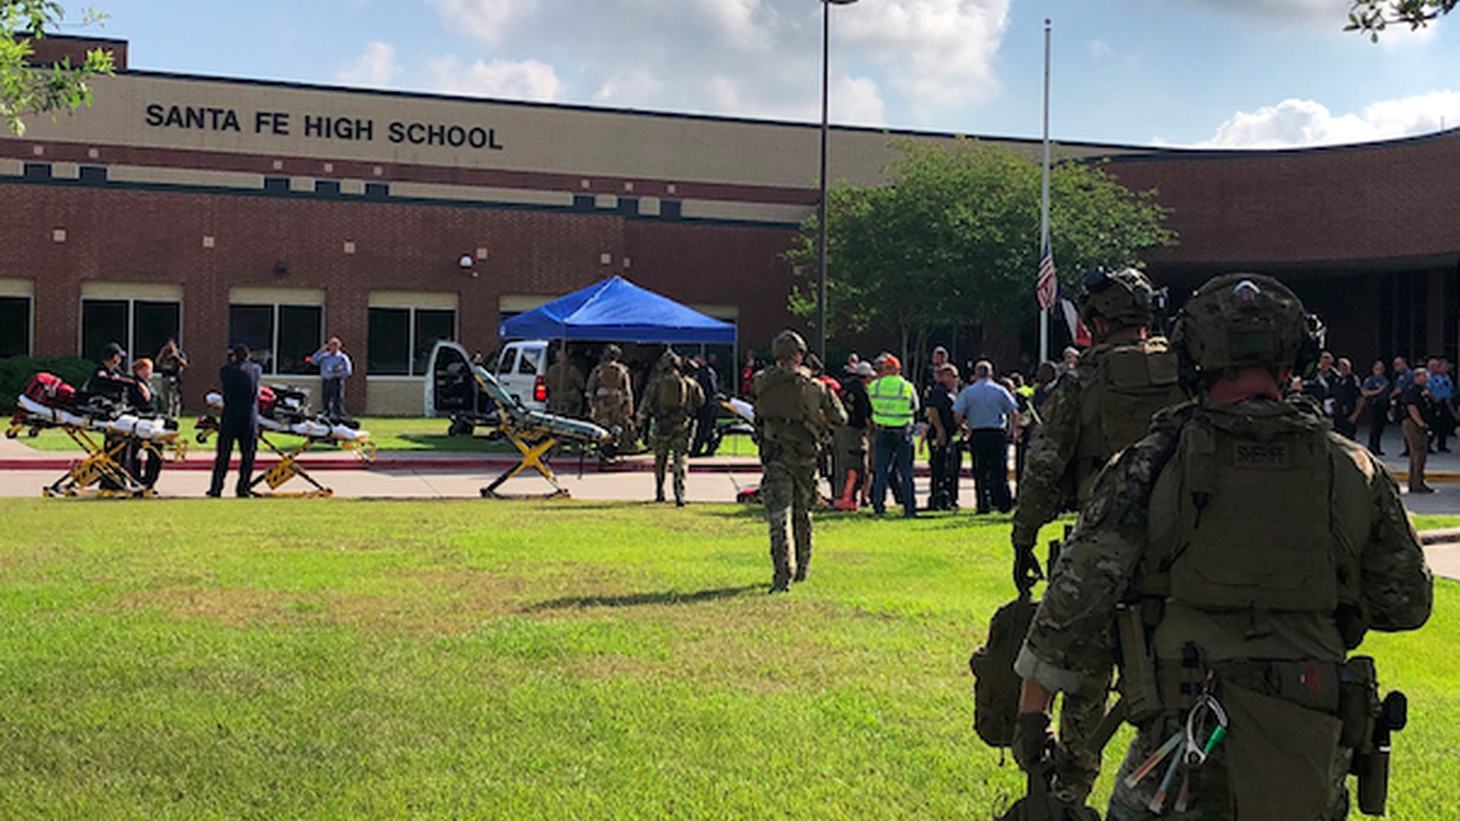 en people were killed Friday at Santa Fe High School in South Eastern Texas, including nine students and one teacher. The alleged shooter is a student named Dimitrios Pagourtzis.